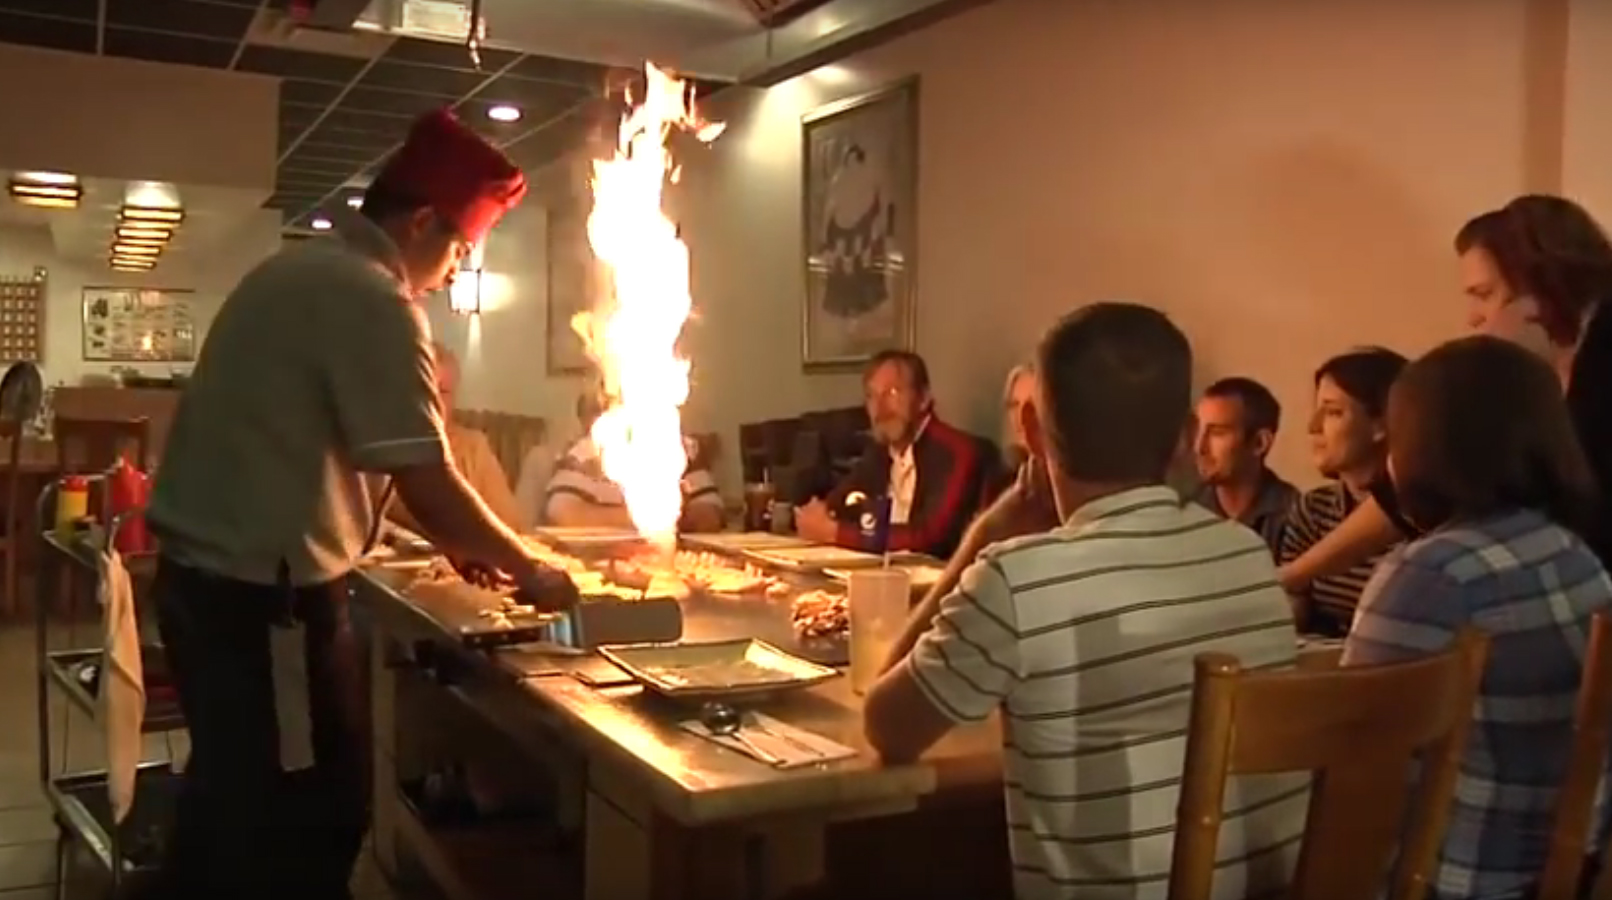 Homeplate S Stephanie Shaw And Her Son Caleb Take A Trip To Yamato Anese Restaurant Serves Up Hibachi Style Meals Cooked In Front Of The